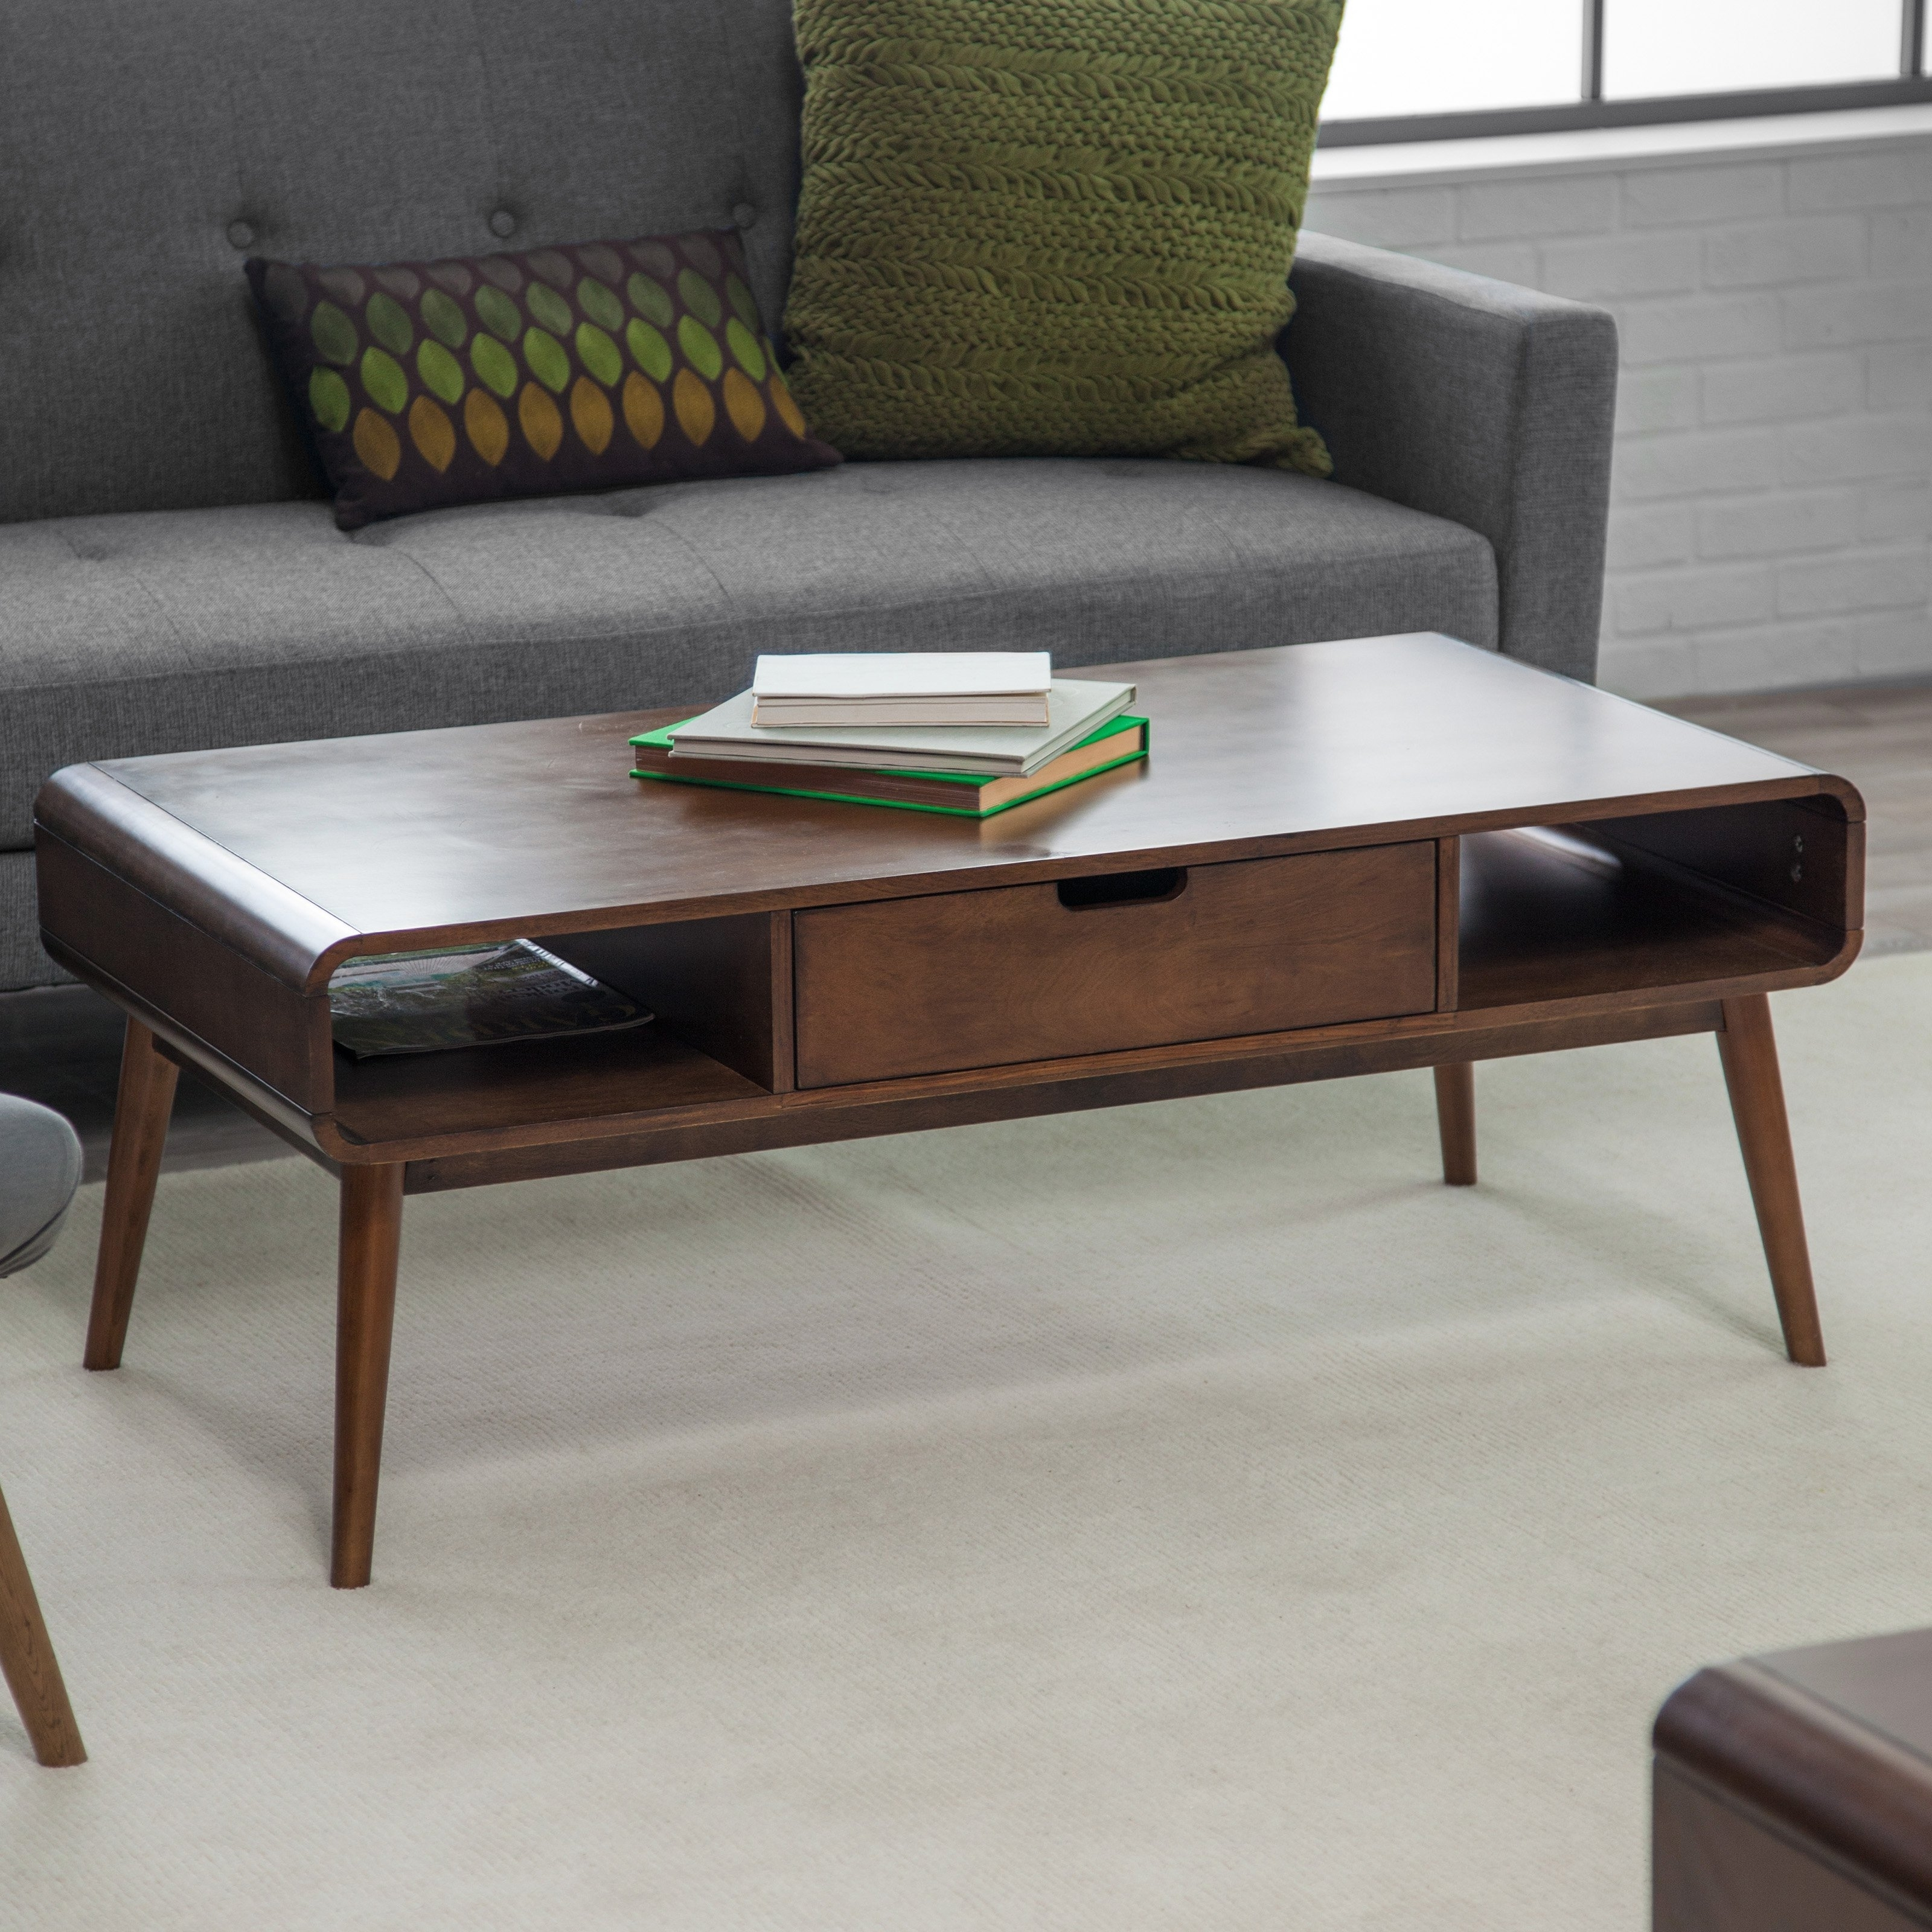 Living Room Contemporary White Side Table Cool Coffee Table Designs For Jelly Bean Coffee Tables (Image 22 of 30)